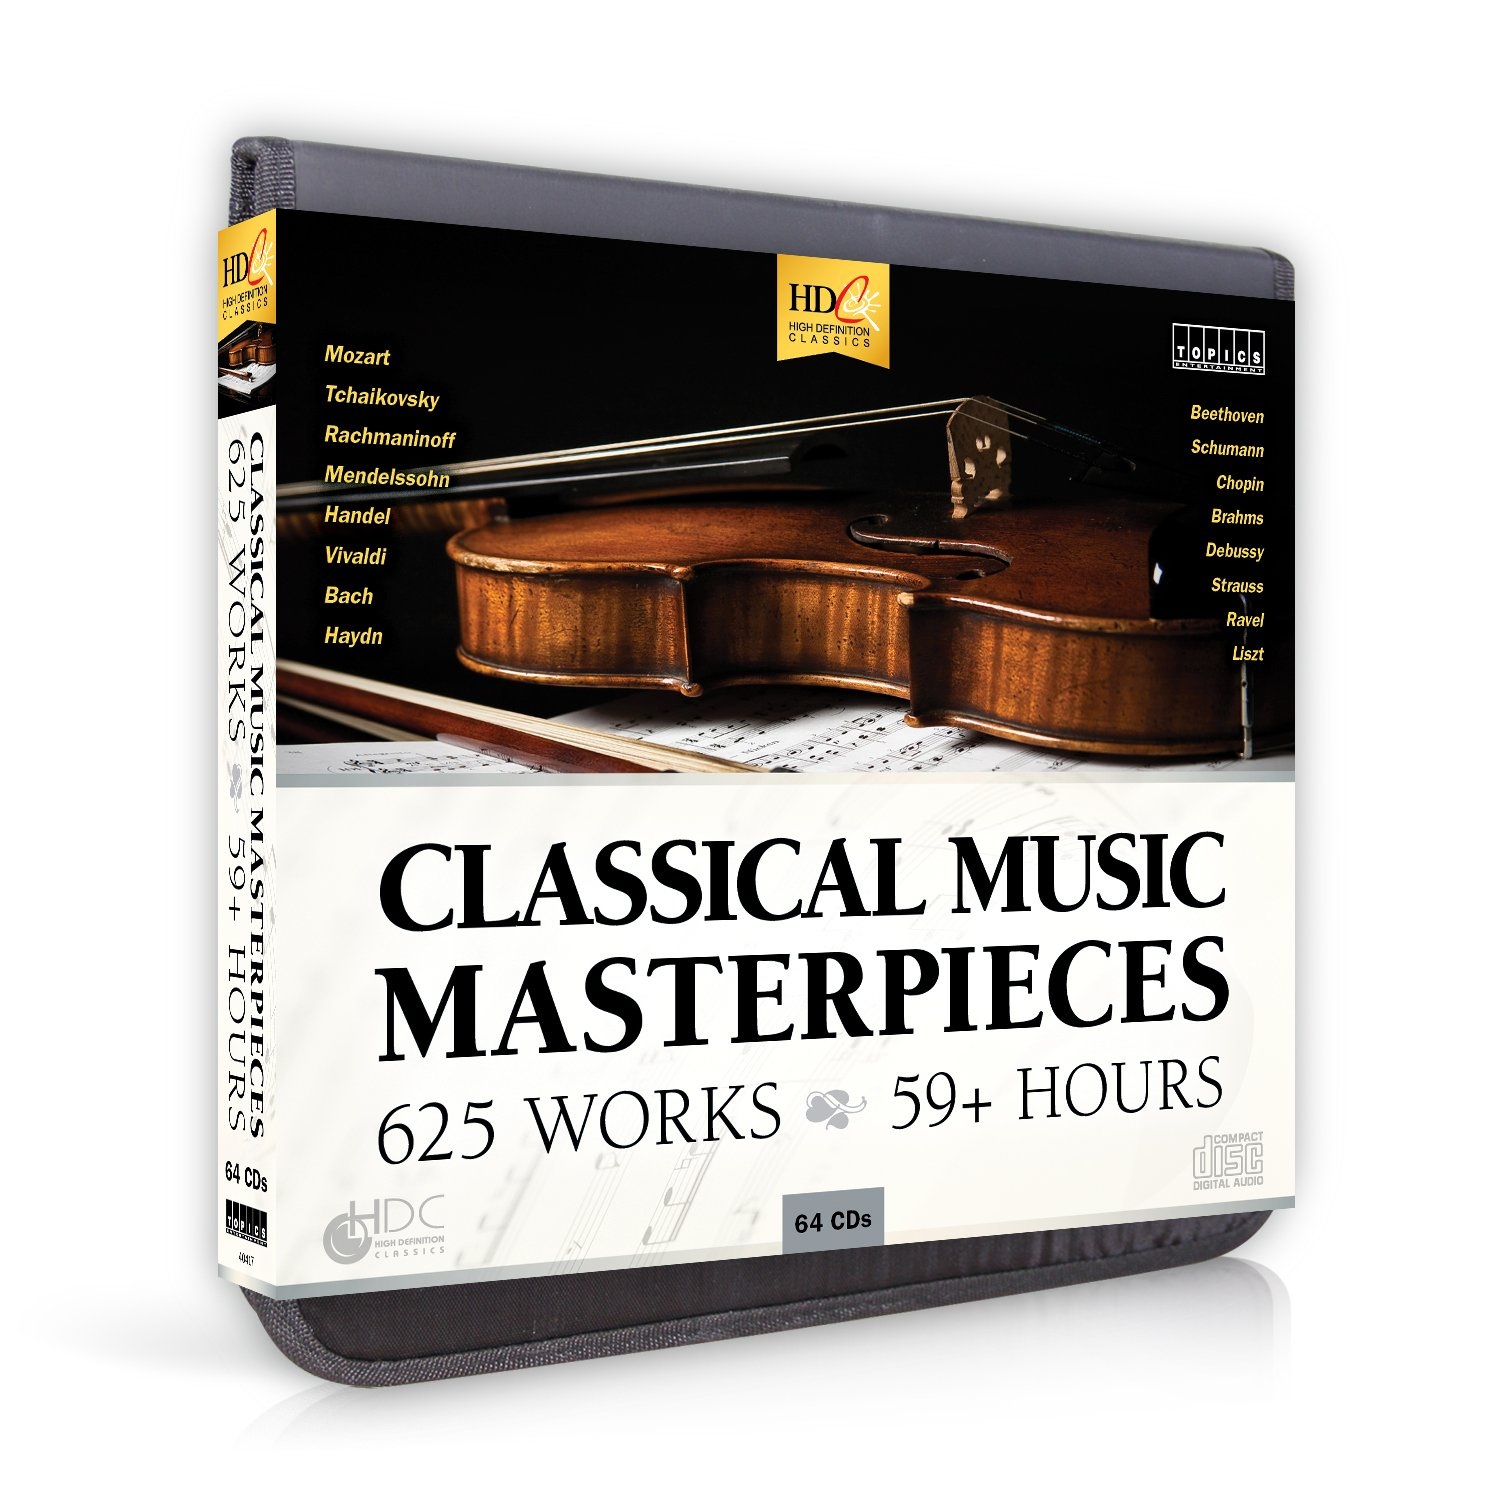 Classical Music Masterpieces - Beethoven Mozart Medelssohm